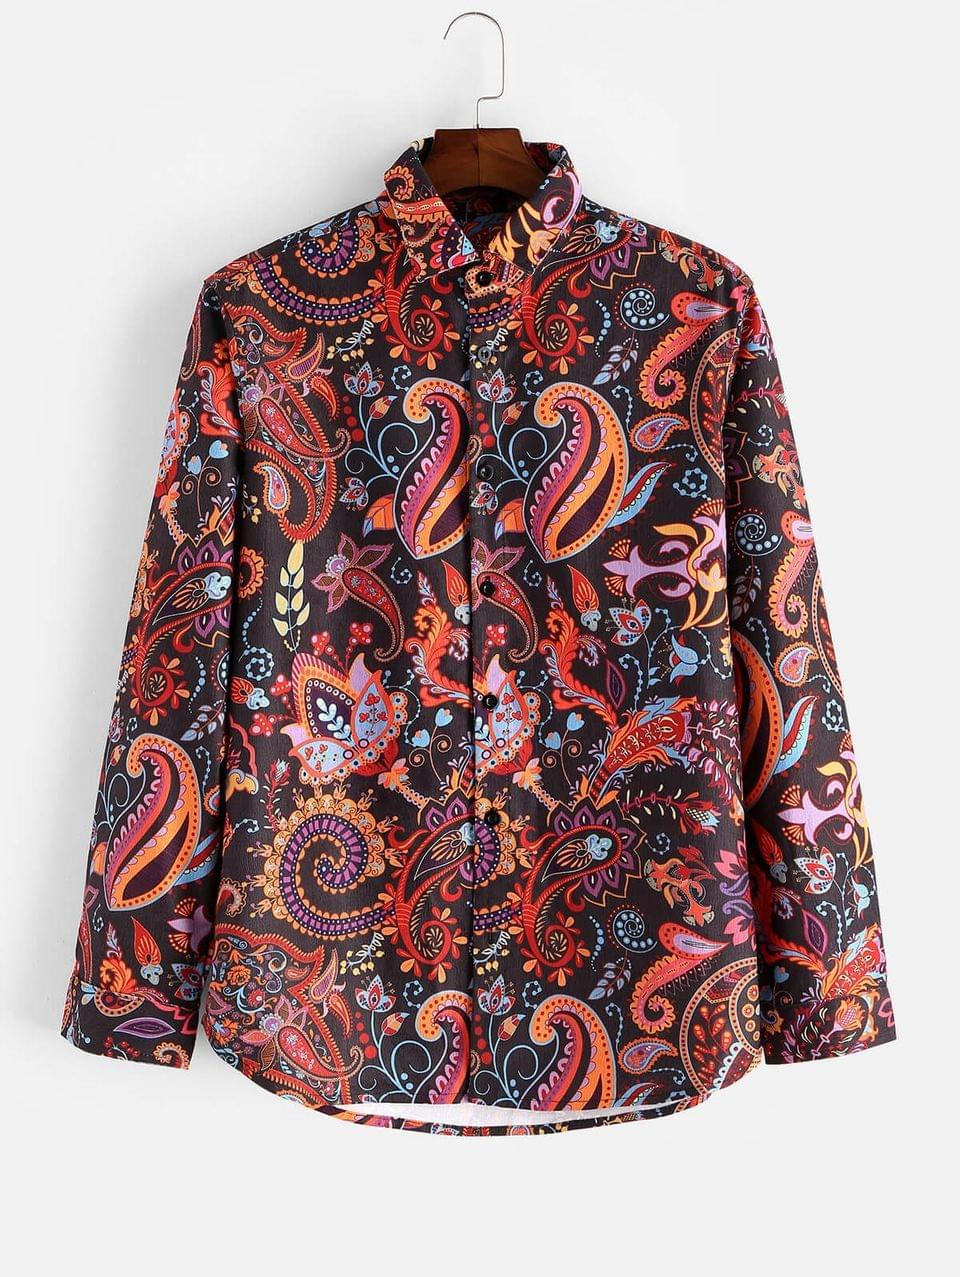 Men's Paisley Flower Allover Print Long Sleeve Button Shirt - Multi M